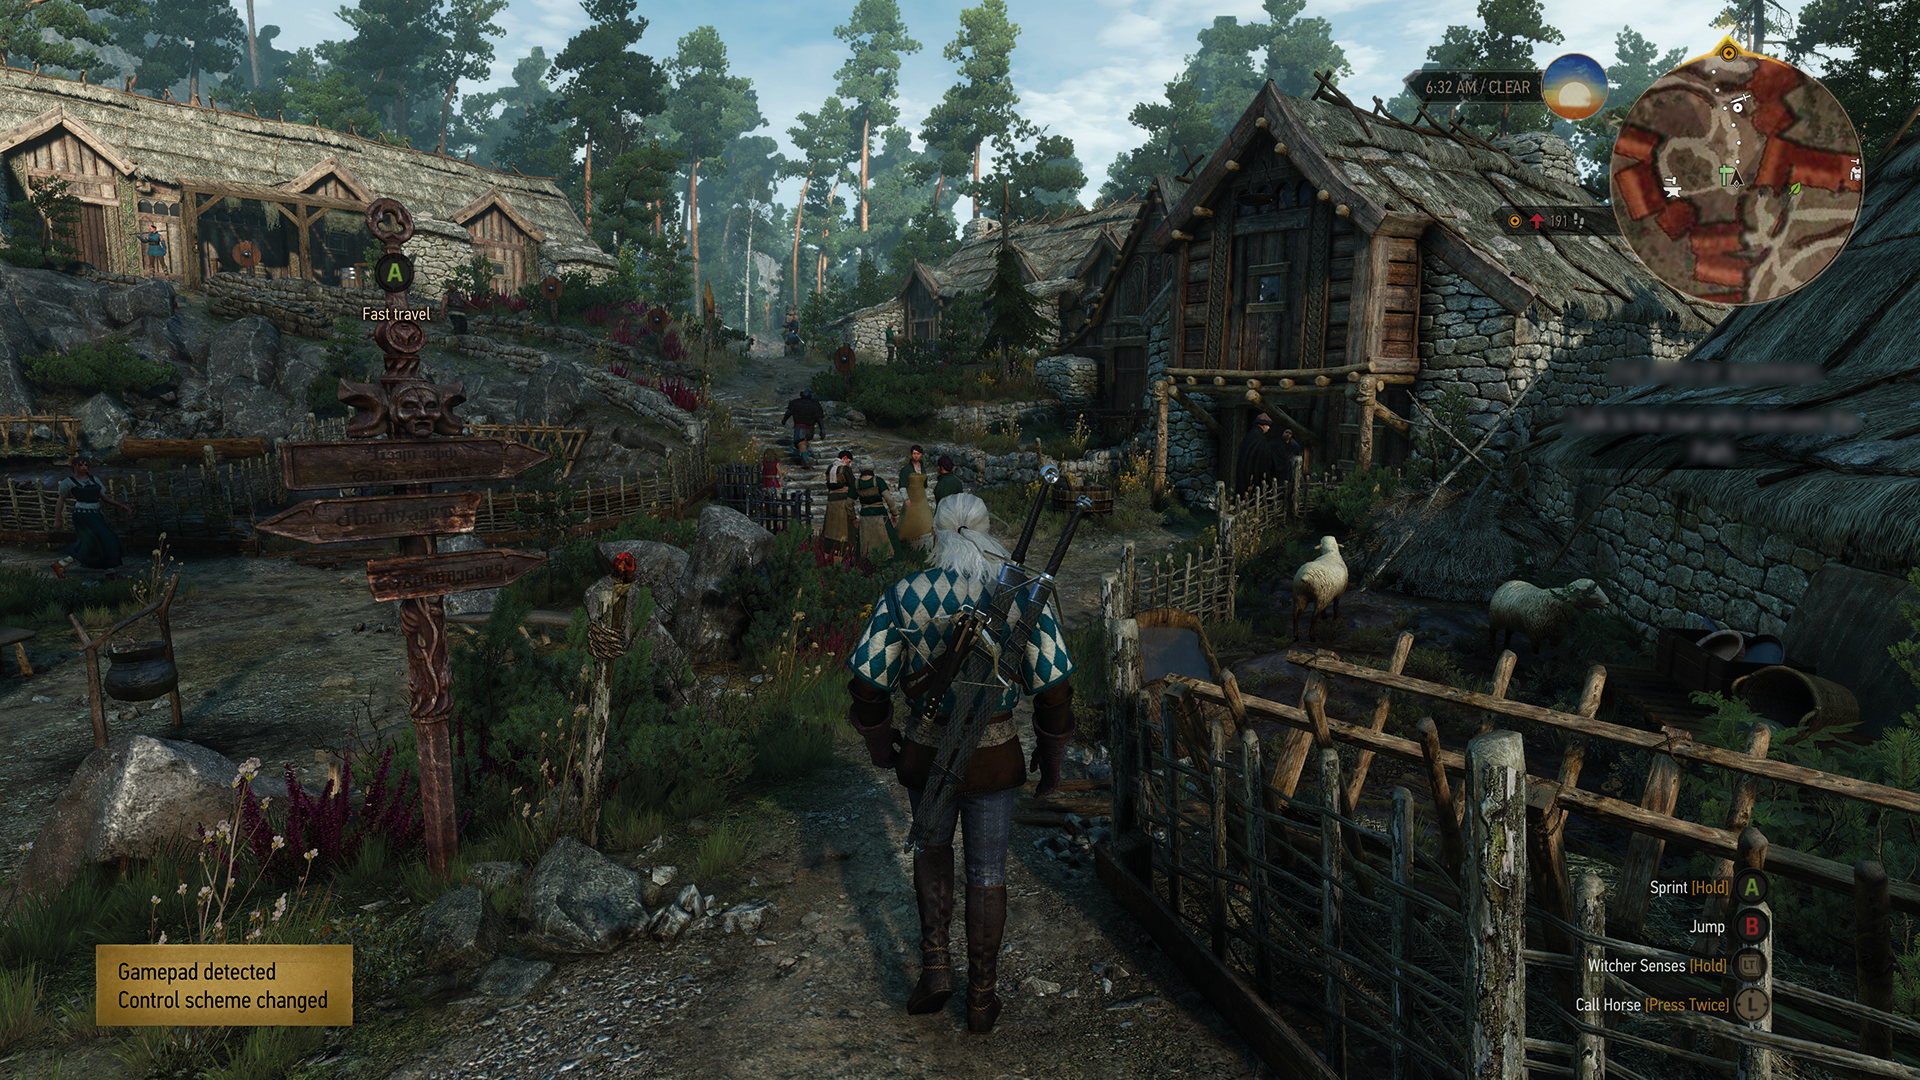 Game Witcher 3: how to get to Caer Morhen. Passage and recommendations 73